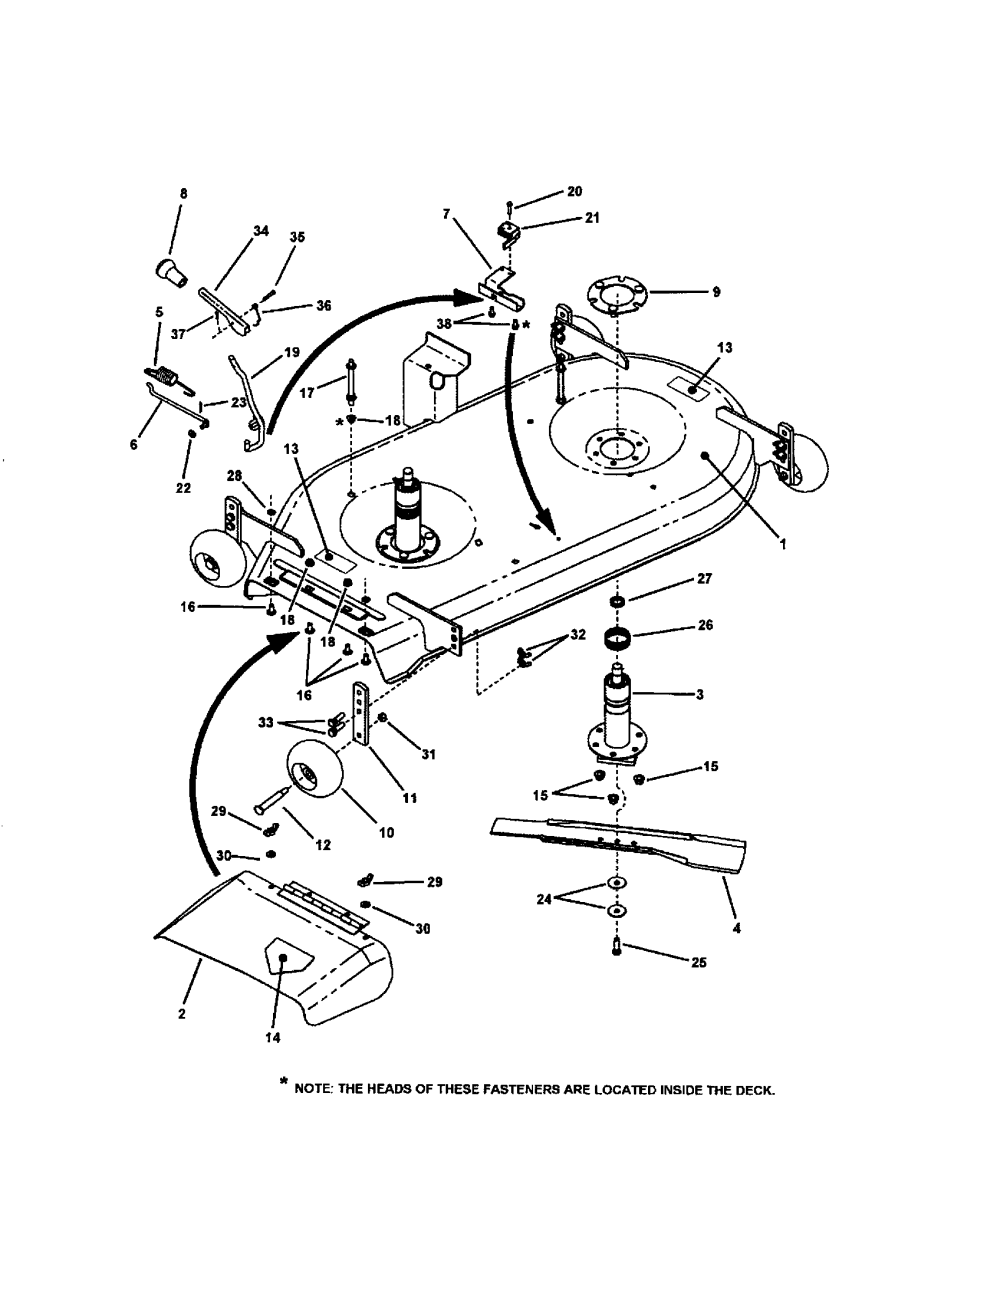 medium resolution of 42 mower deck pt 1 diagram and parts list for snapper ridingmower